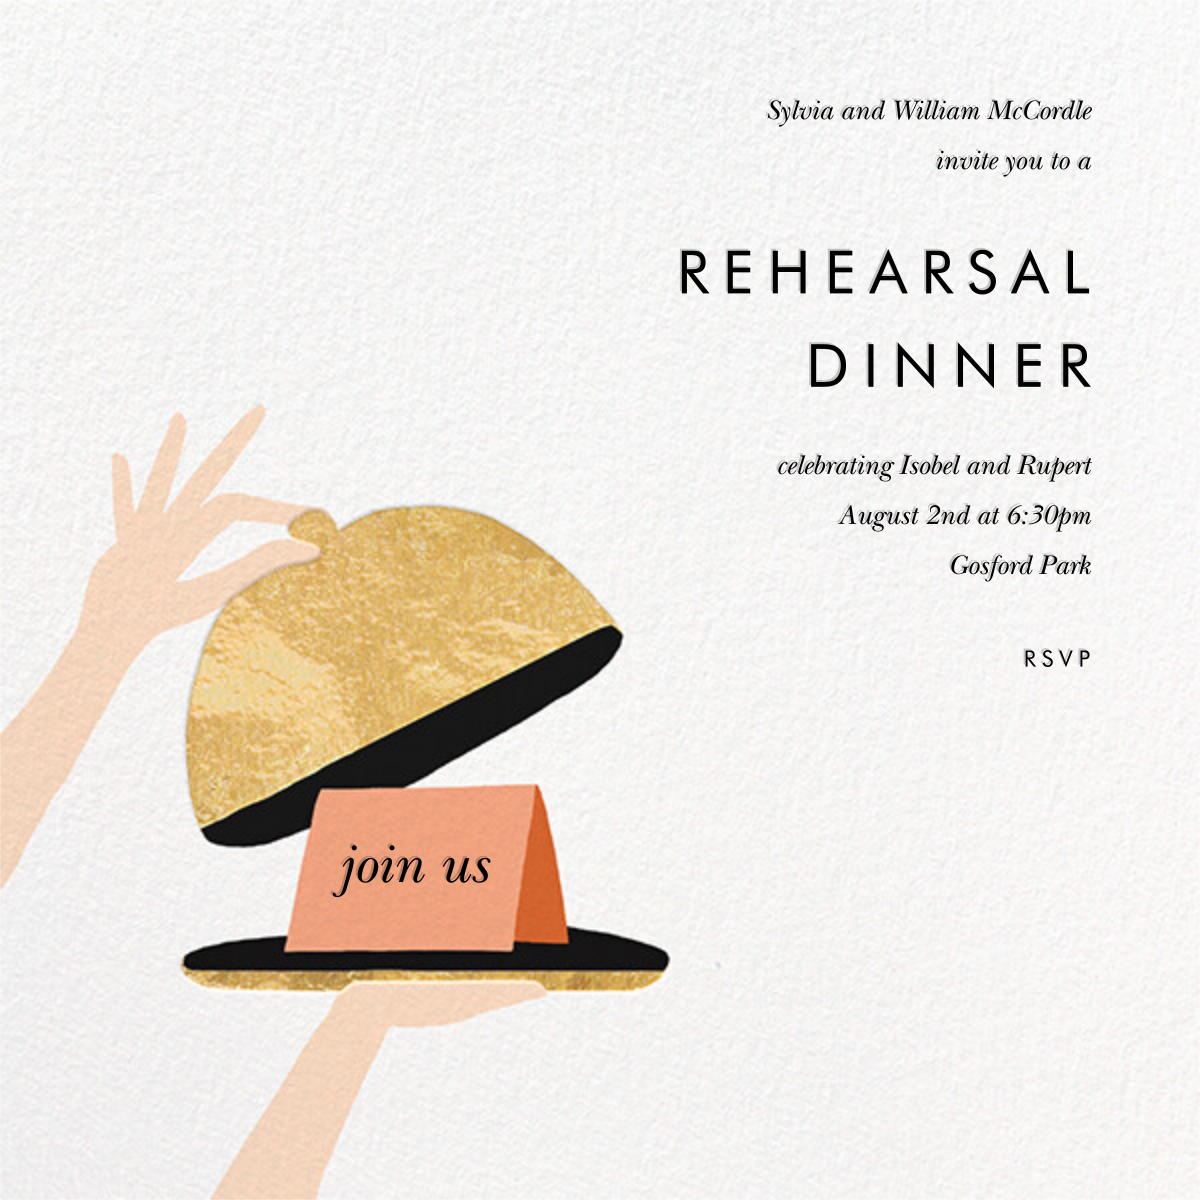 Cloche - Rifle Paper Co. - Rehearsal dinner